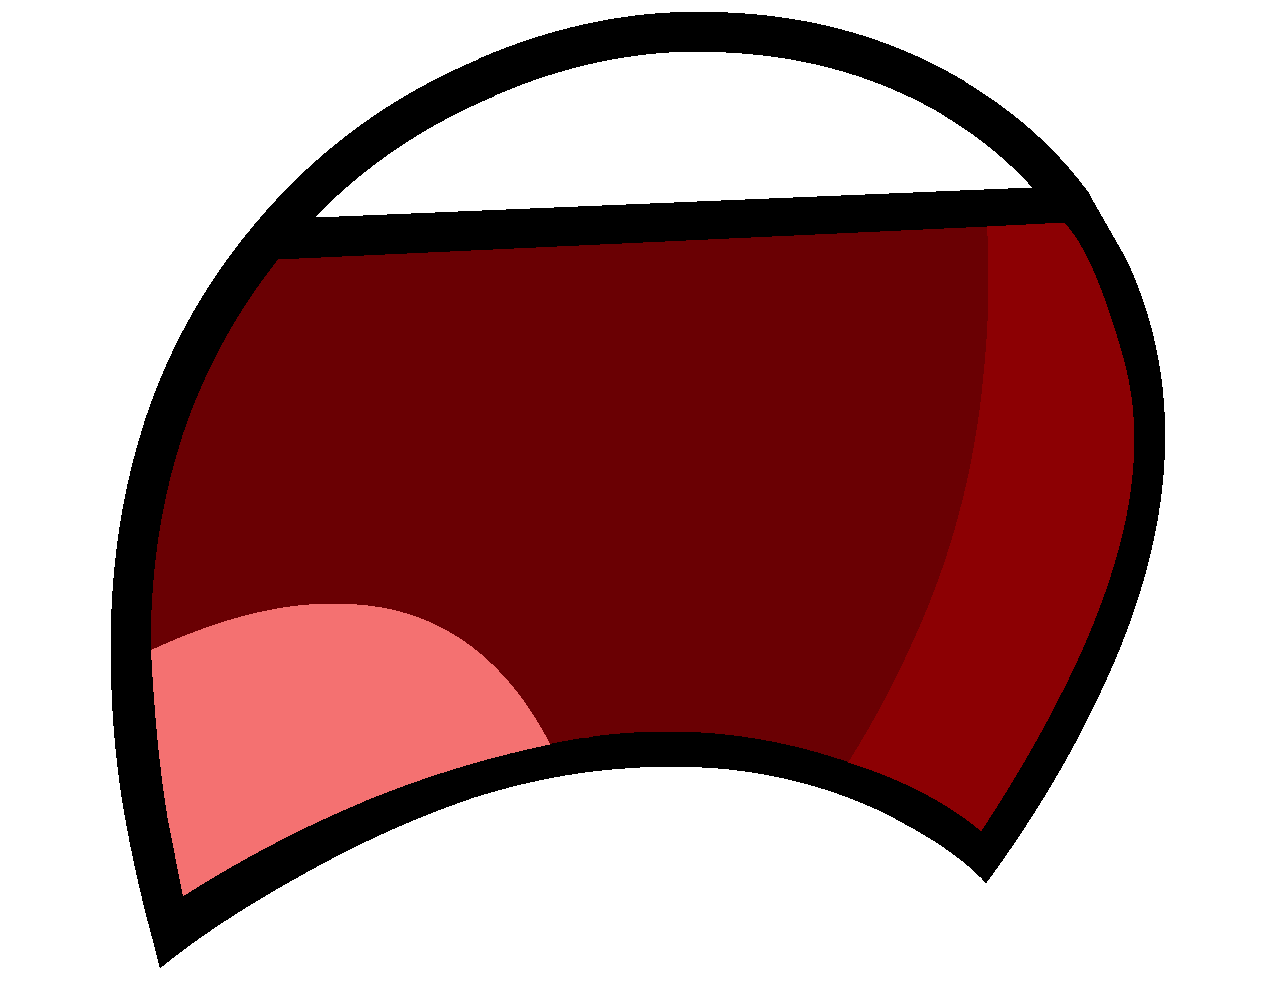 Cartoon group lips frown. Clipart mouth unhappy